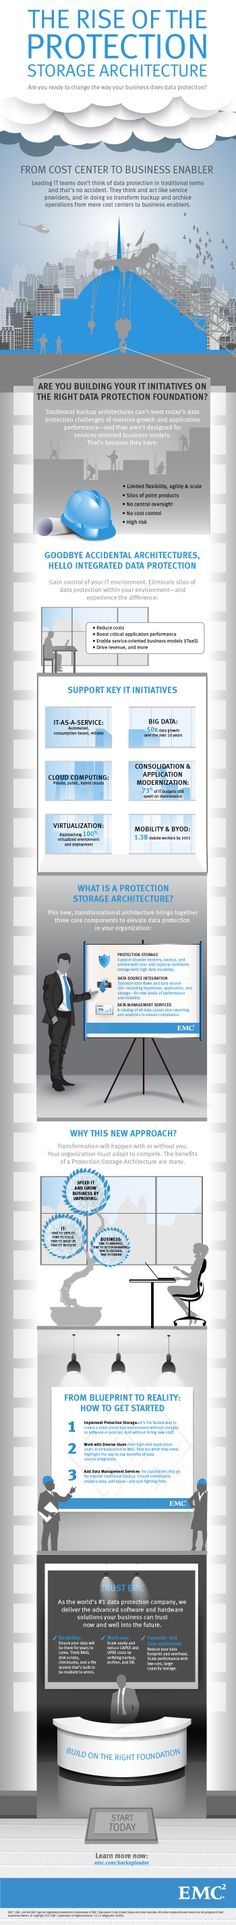 The Rise of the Protection Storage Architecture   Traditional backup architectures can't meet today's challenges of massive growth and application performance, nor are they designed for services-oriented business models. Top organizations build their futures on Protection Storage Architectures, which help eliminate backup silos, consolidate data protection, and drive services-oriented business models. Do you have the right foundation?